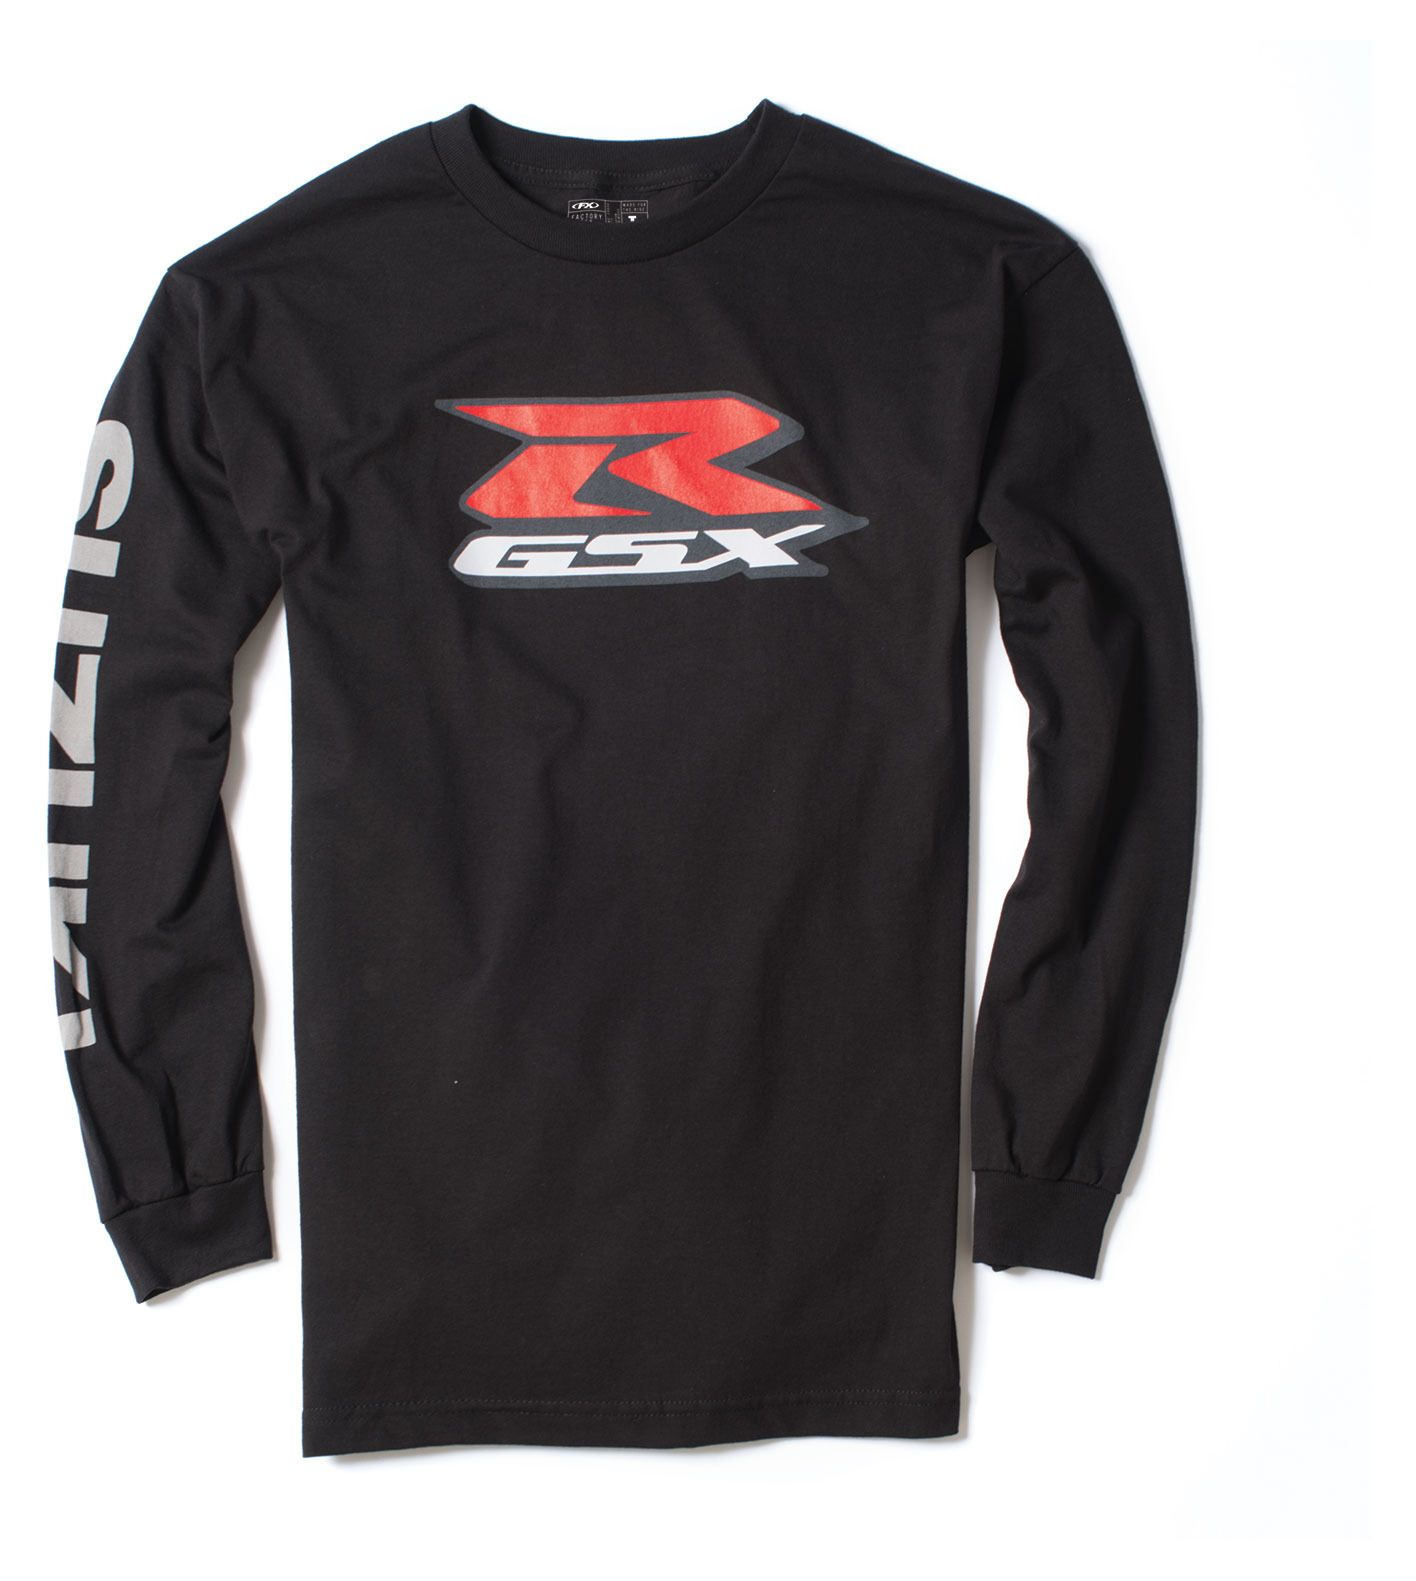 factory effex suzuki gsx r l s t shirt 10 off. Black Bedroom Furniture Sets. Home Design Ideas